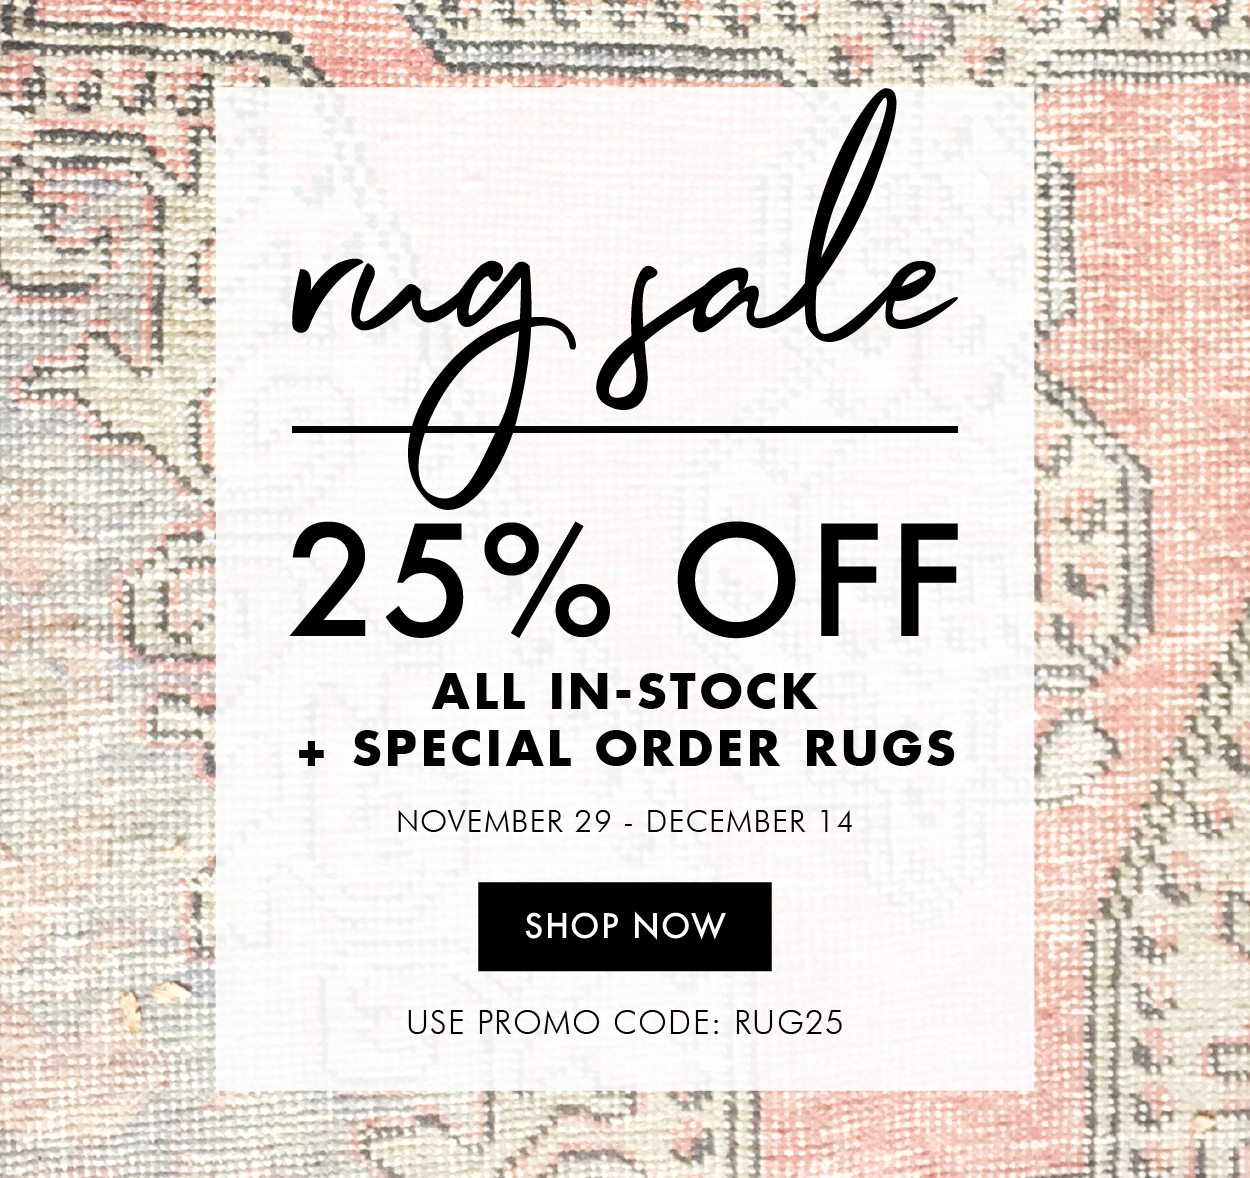 rug-promo-graphic-nov-2016